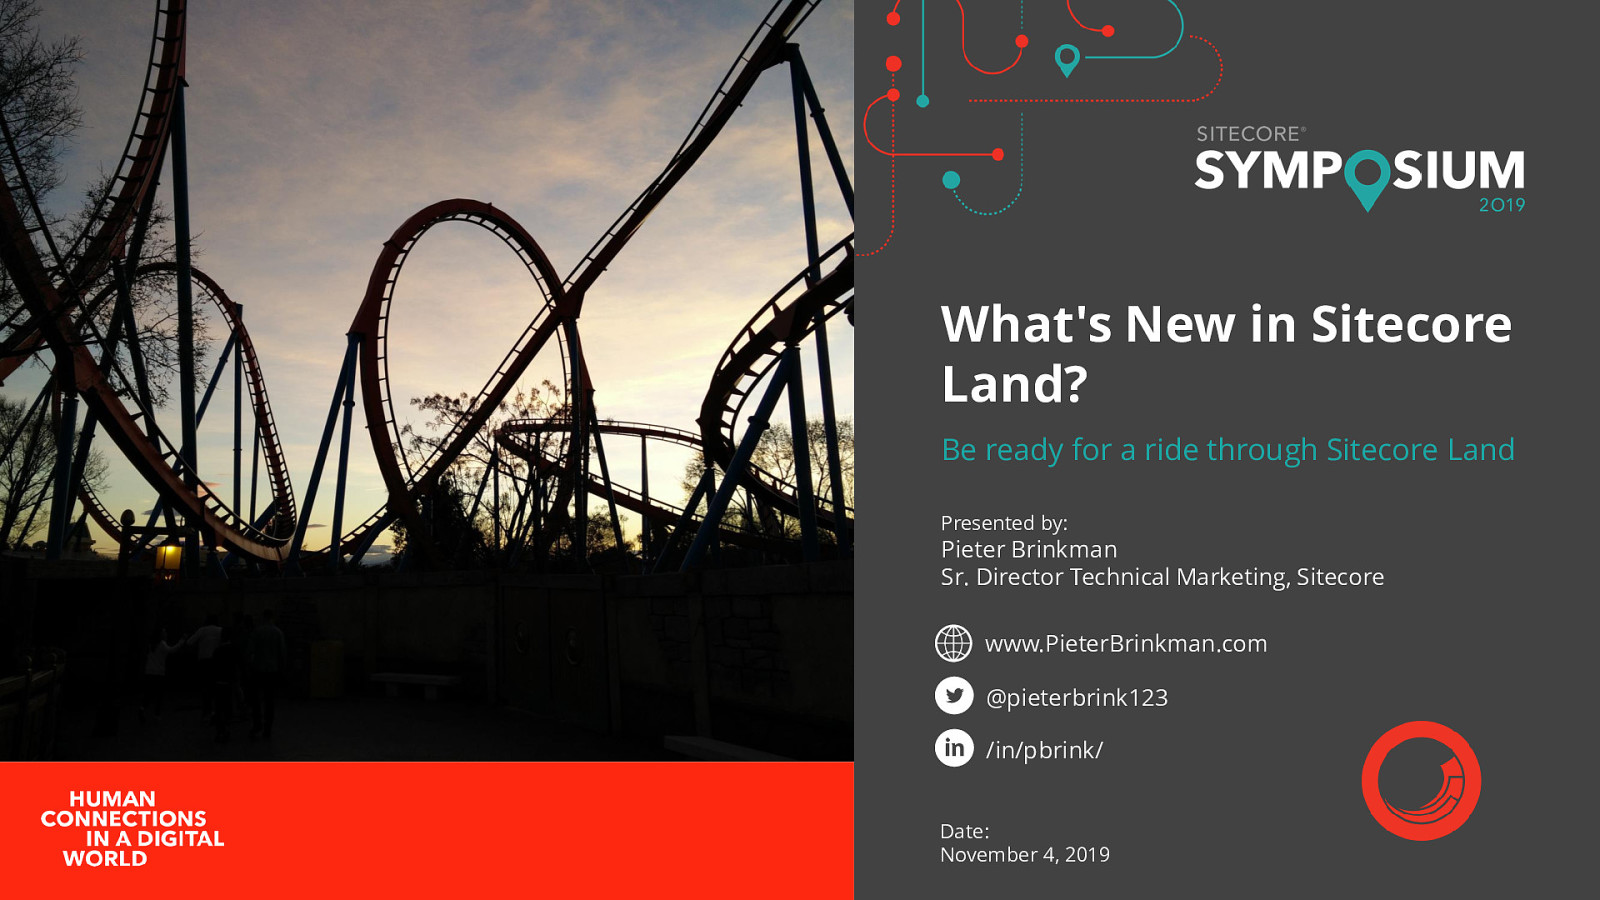 What's new in Sitecore land